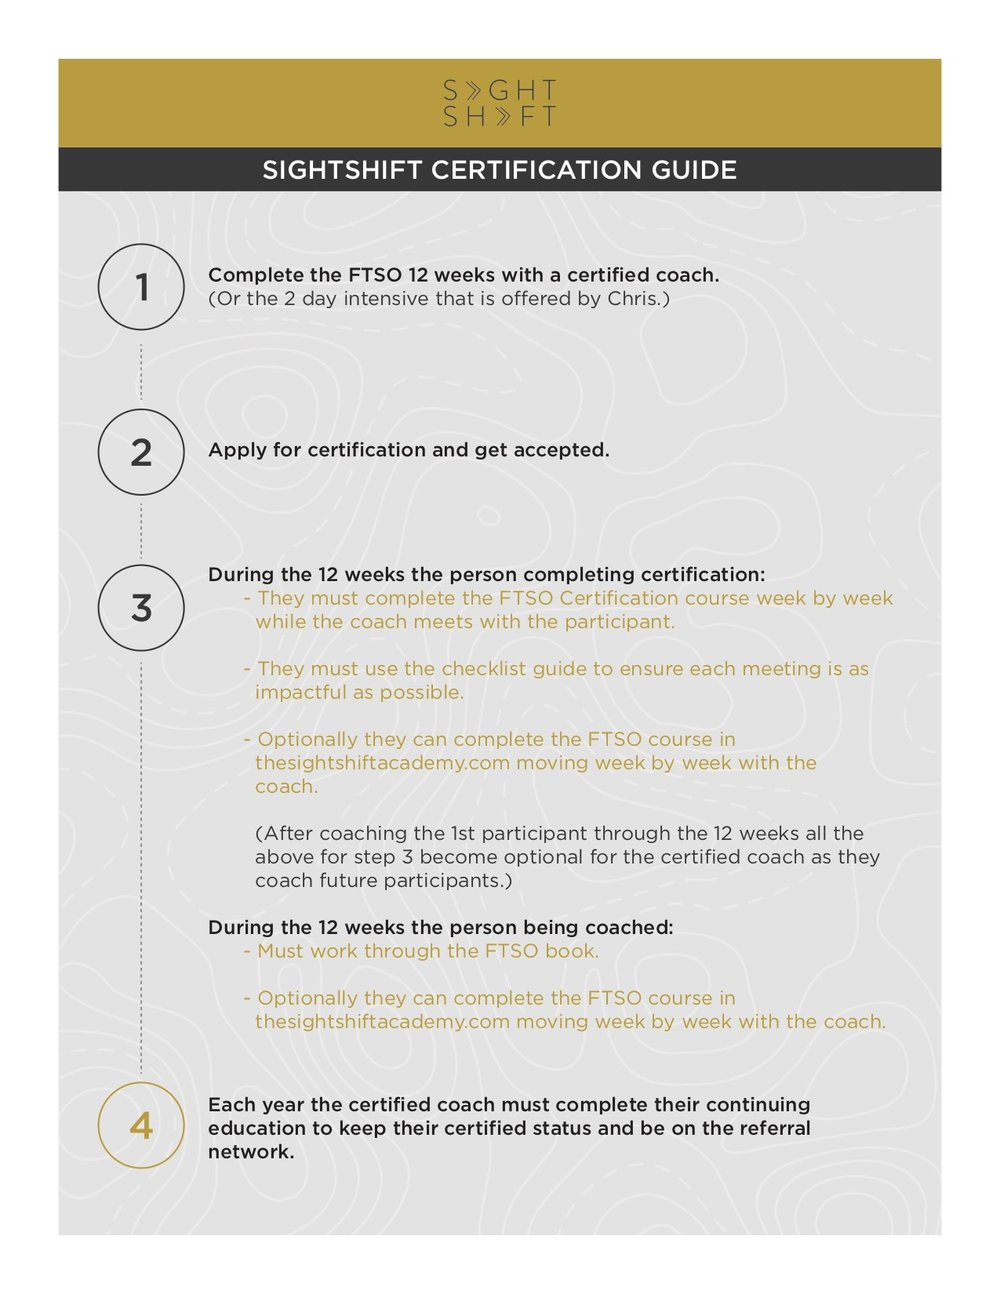 SS-Certification-Guide-R3.jpg